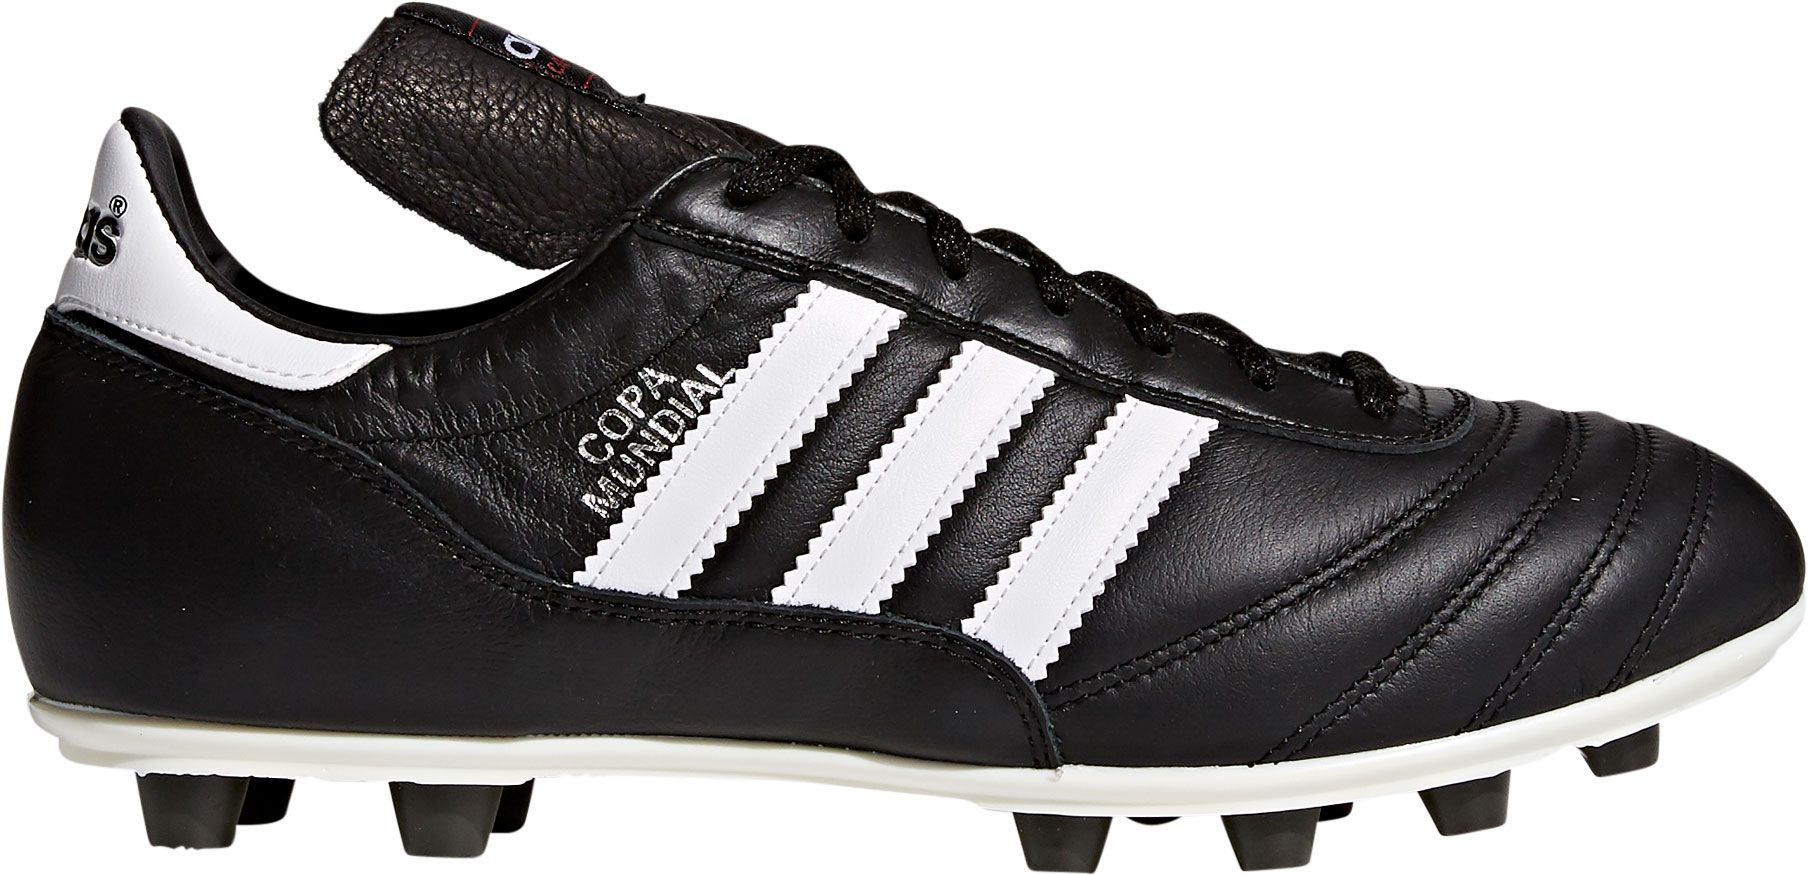 adidas Men's Copa Mundial Soccer Cleat | DICK'S Sporting Goods - photo#21